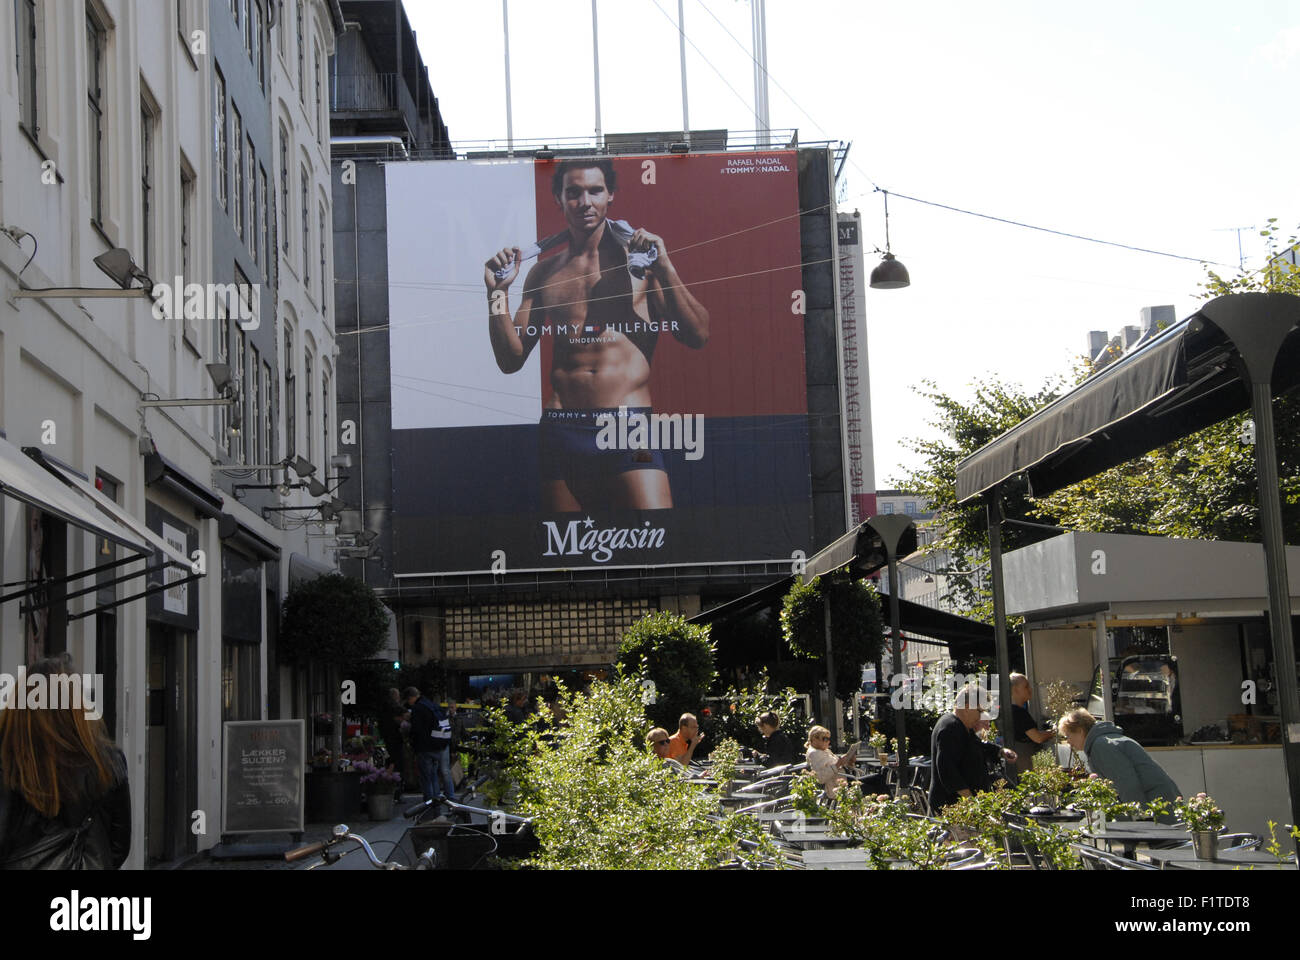 cb1c18ad Copenhagen, Denmark. 07 September, 2015. Billboards promotion of Tommy  Hilfiger hangs at